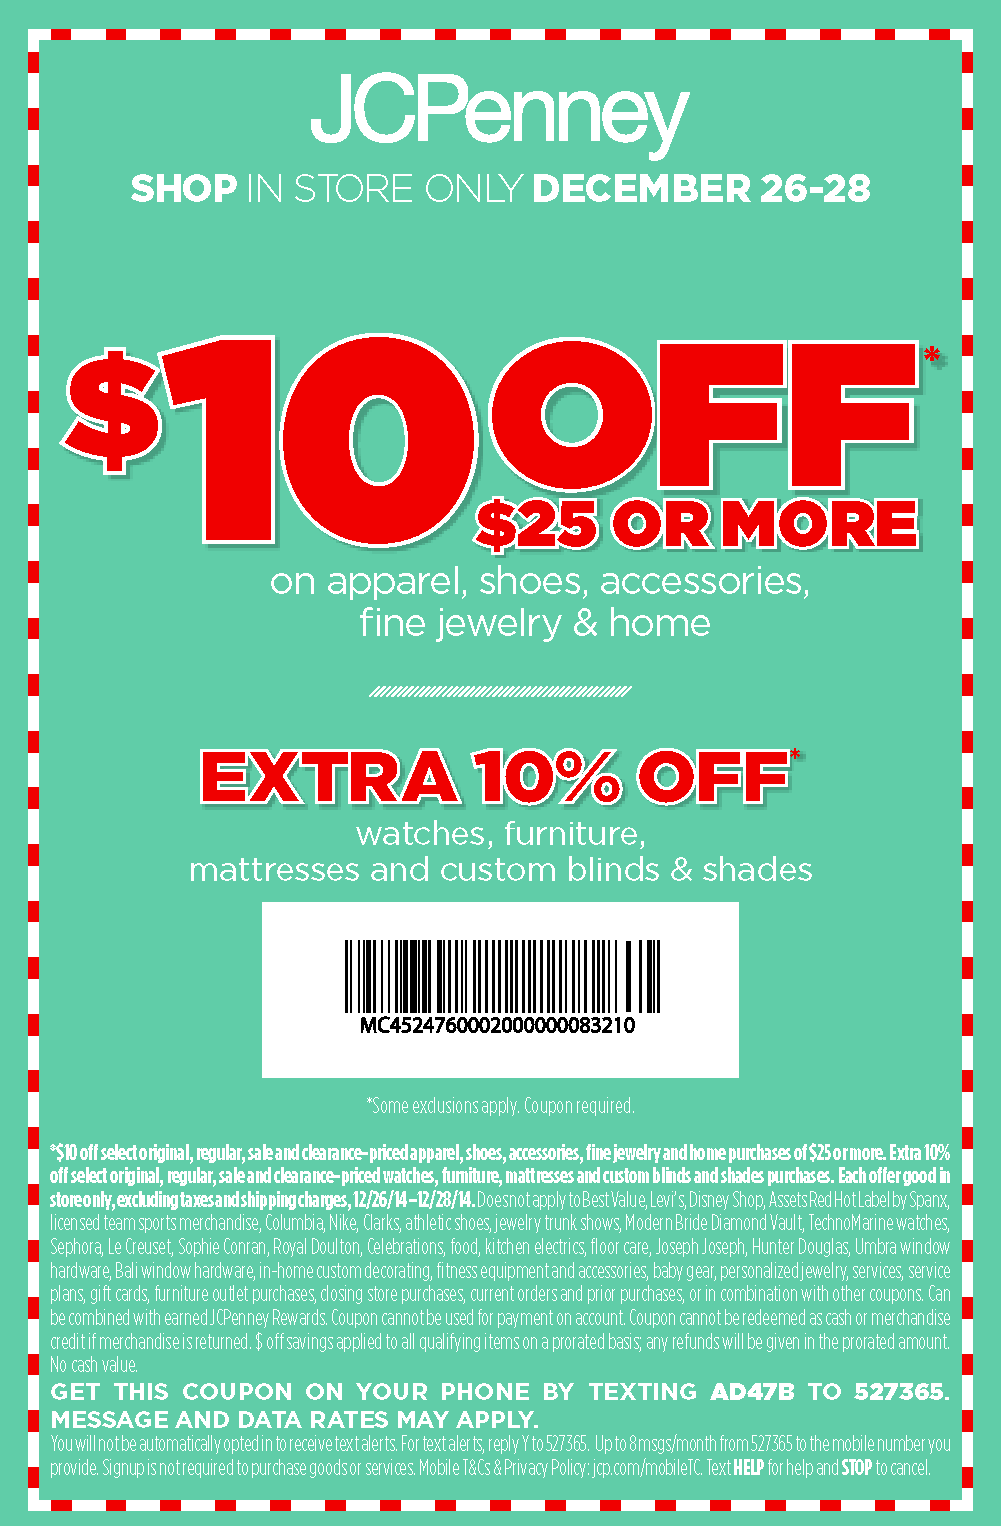 jcpenneys coupons $10 off